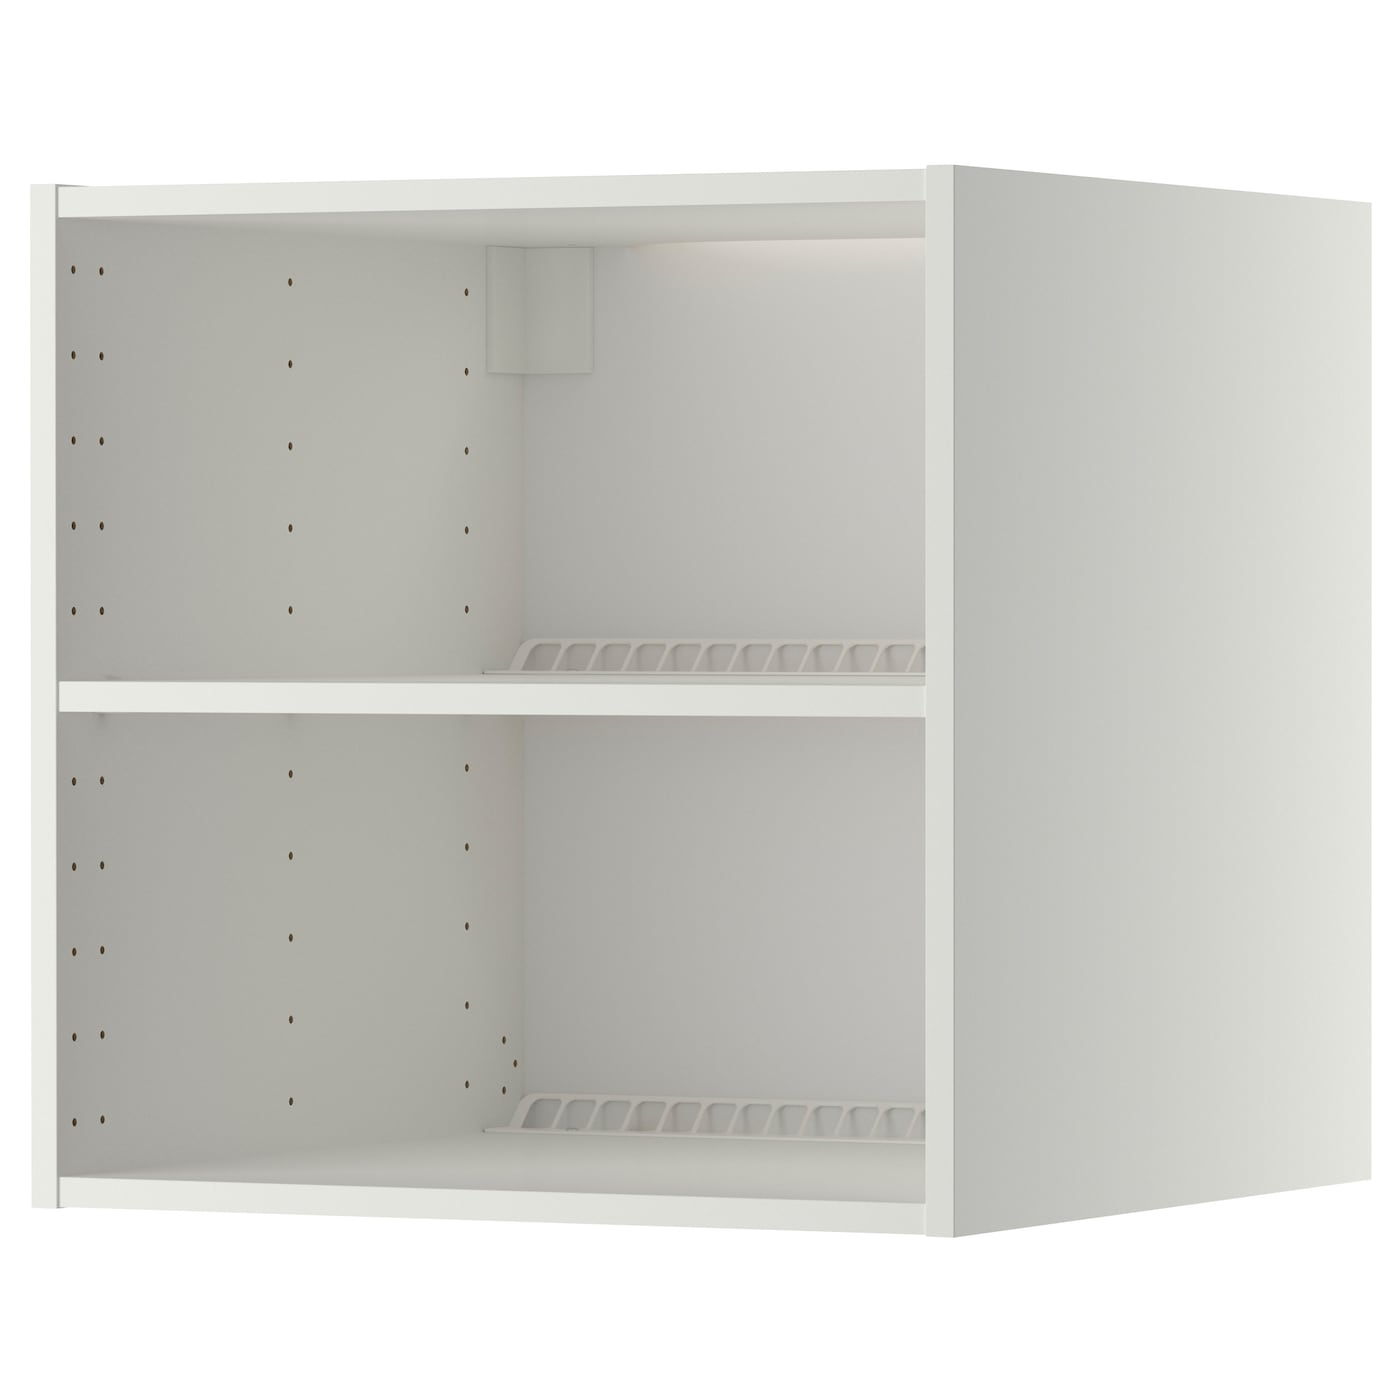 METOD Fridge/freezer top cabinet frame White 60 x 60 x 60 cm - IKEA